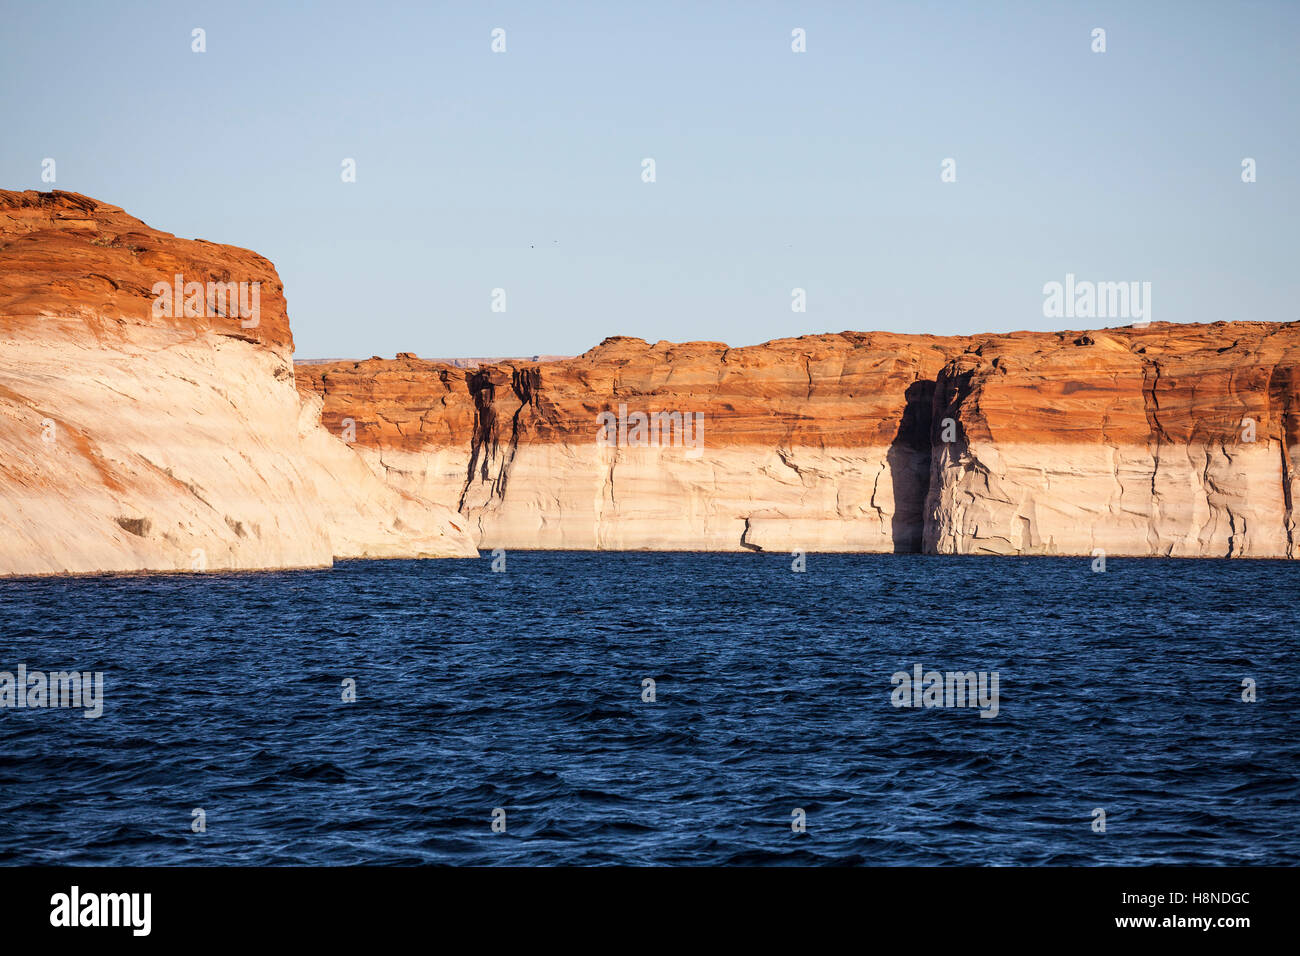 Acqua bassa vasca anello su scogliere di arenaria attorno al lago Powell in Glen Canyon National Recreation Area Immagini Stock